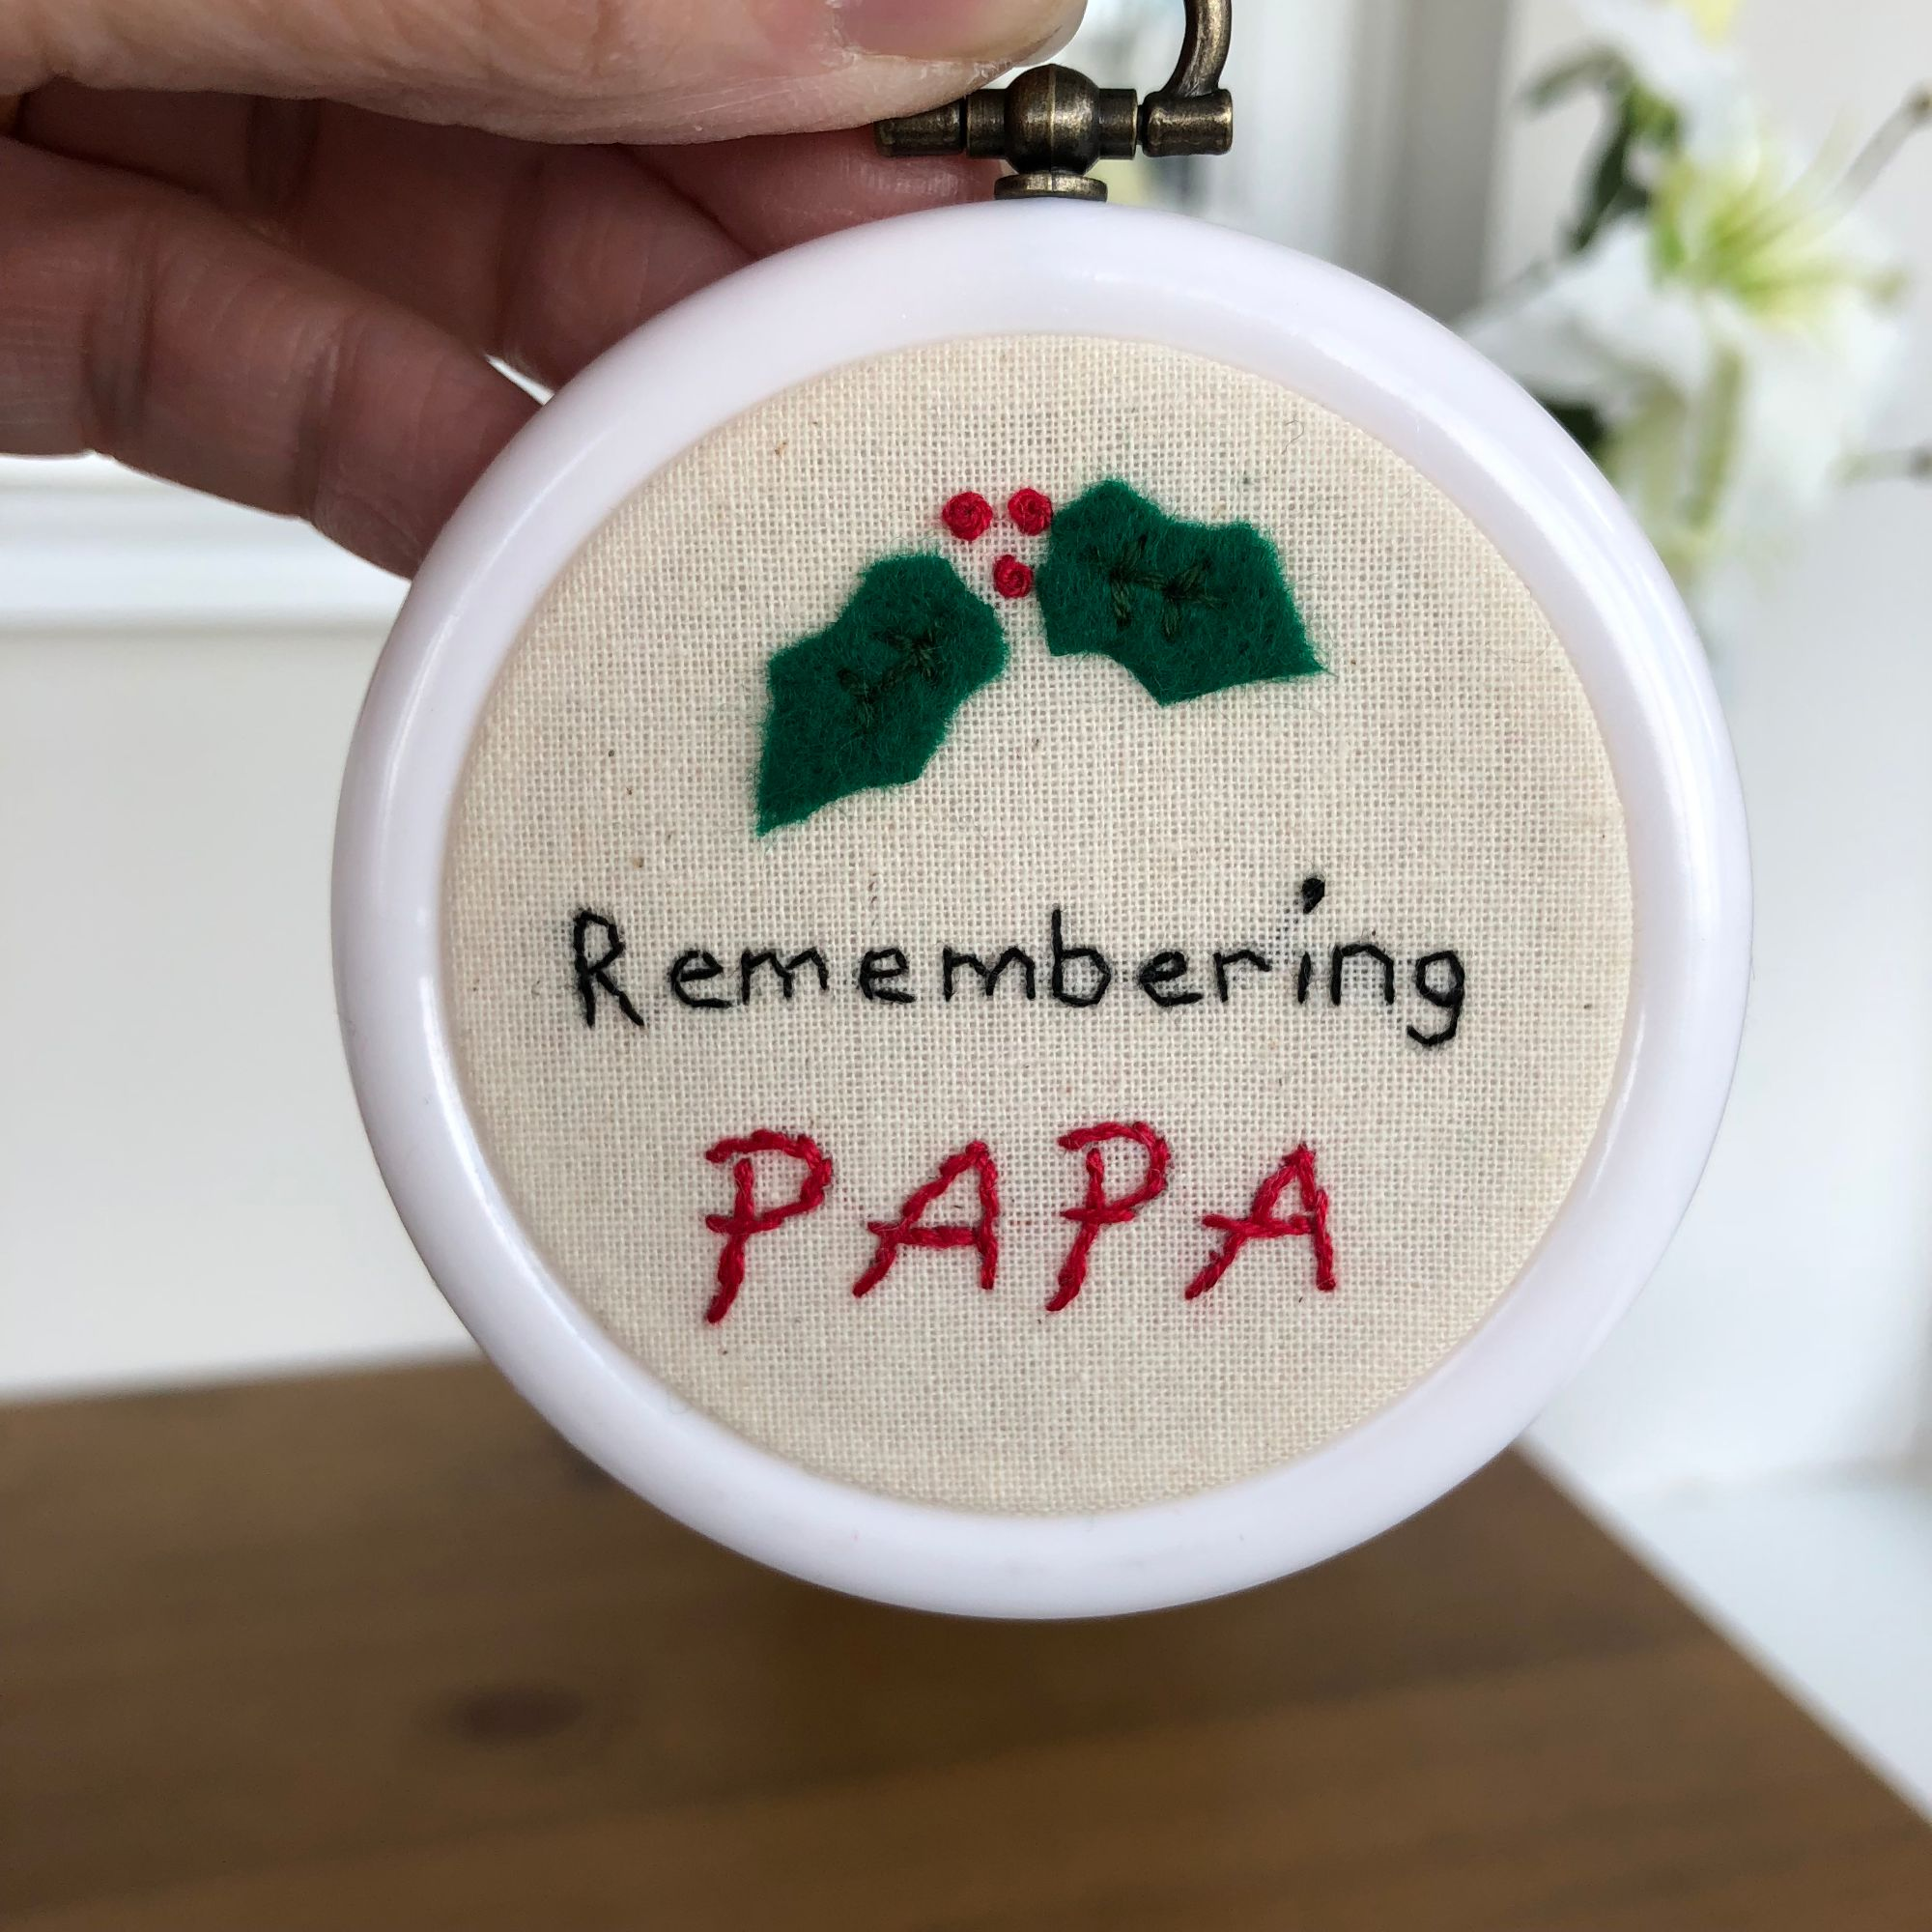 Remembering Papa at Christmas